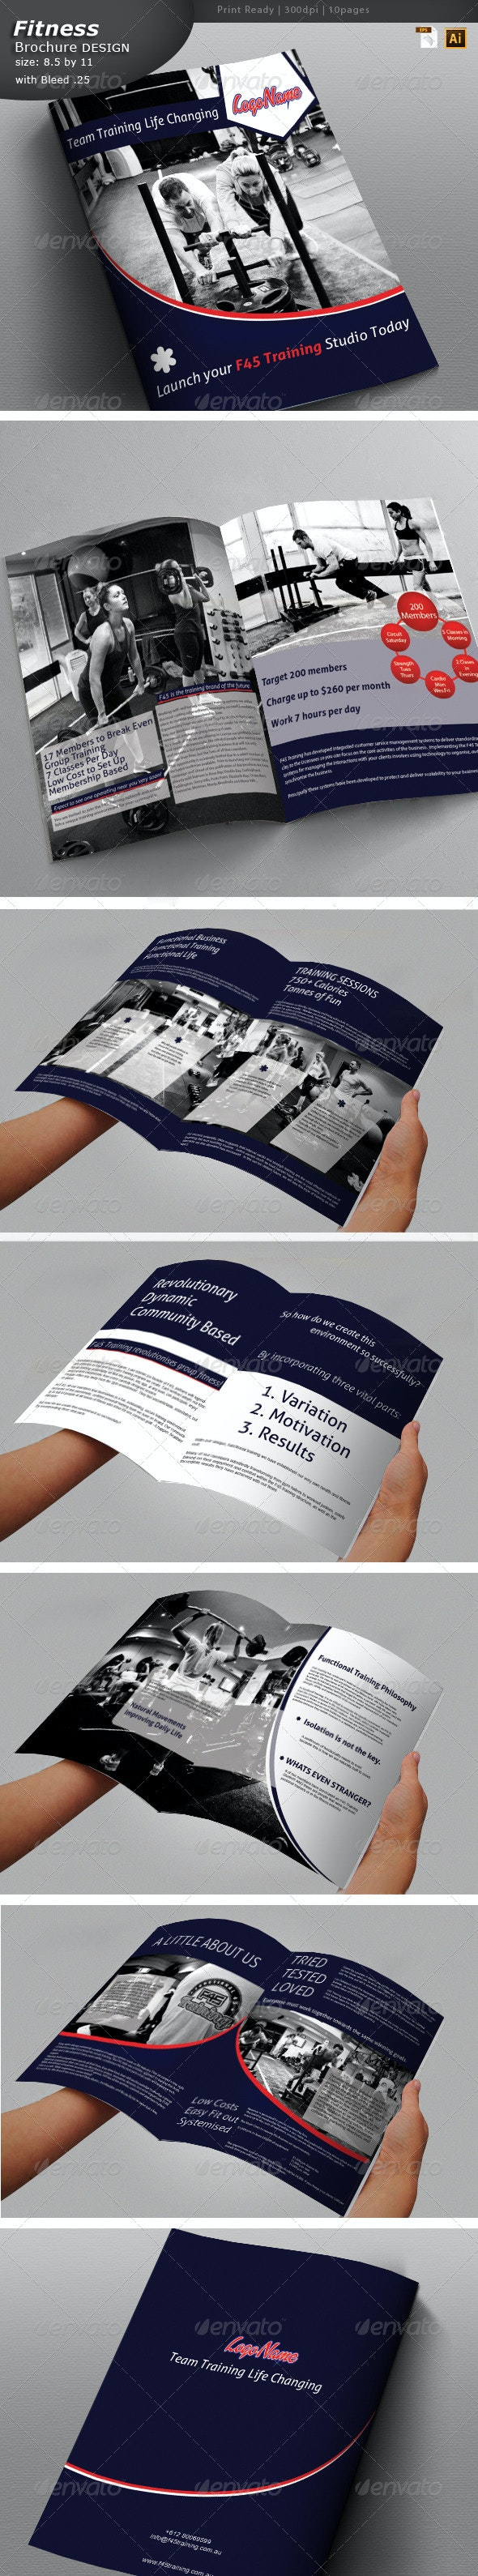 Fitness Training Brochure - Brochures Print Templates